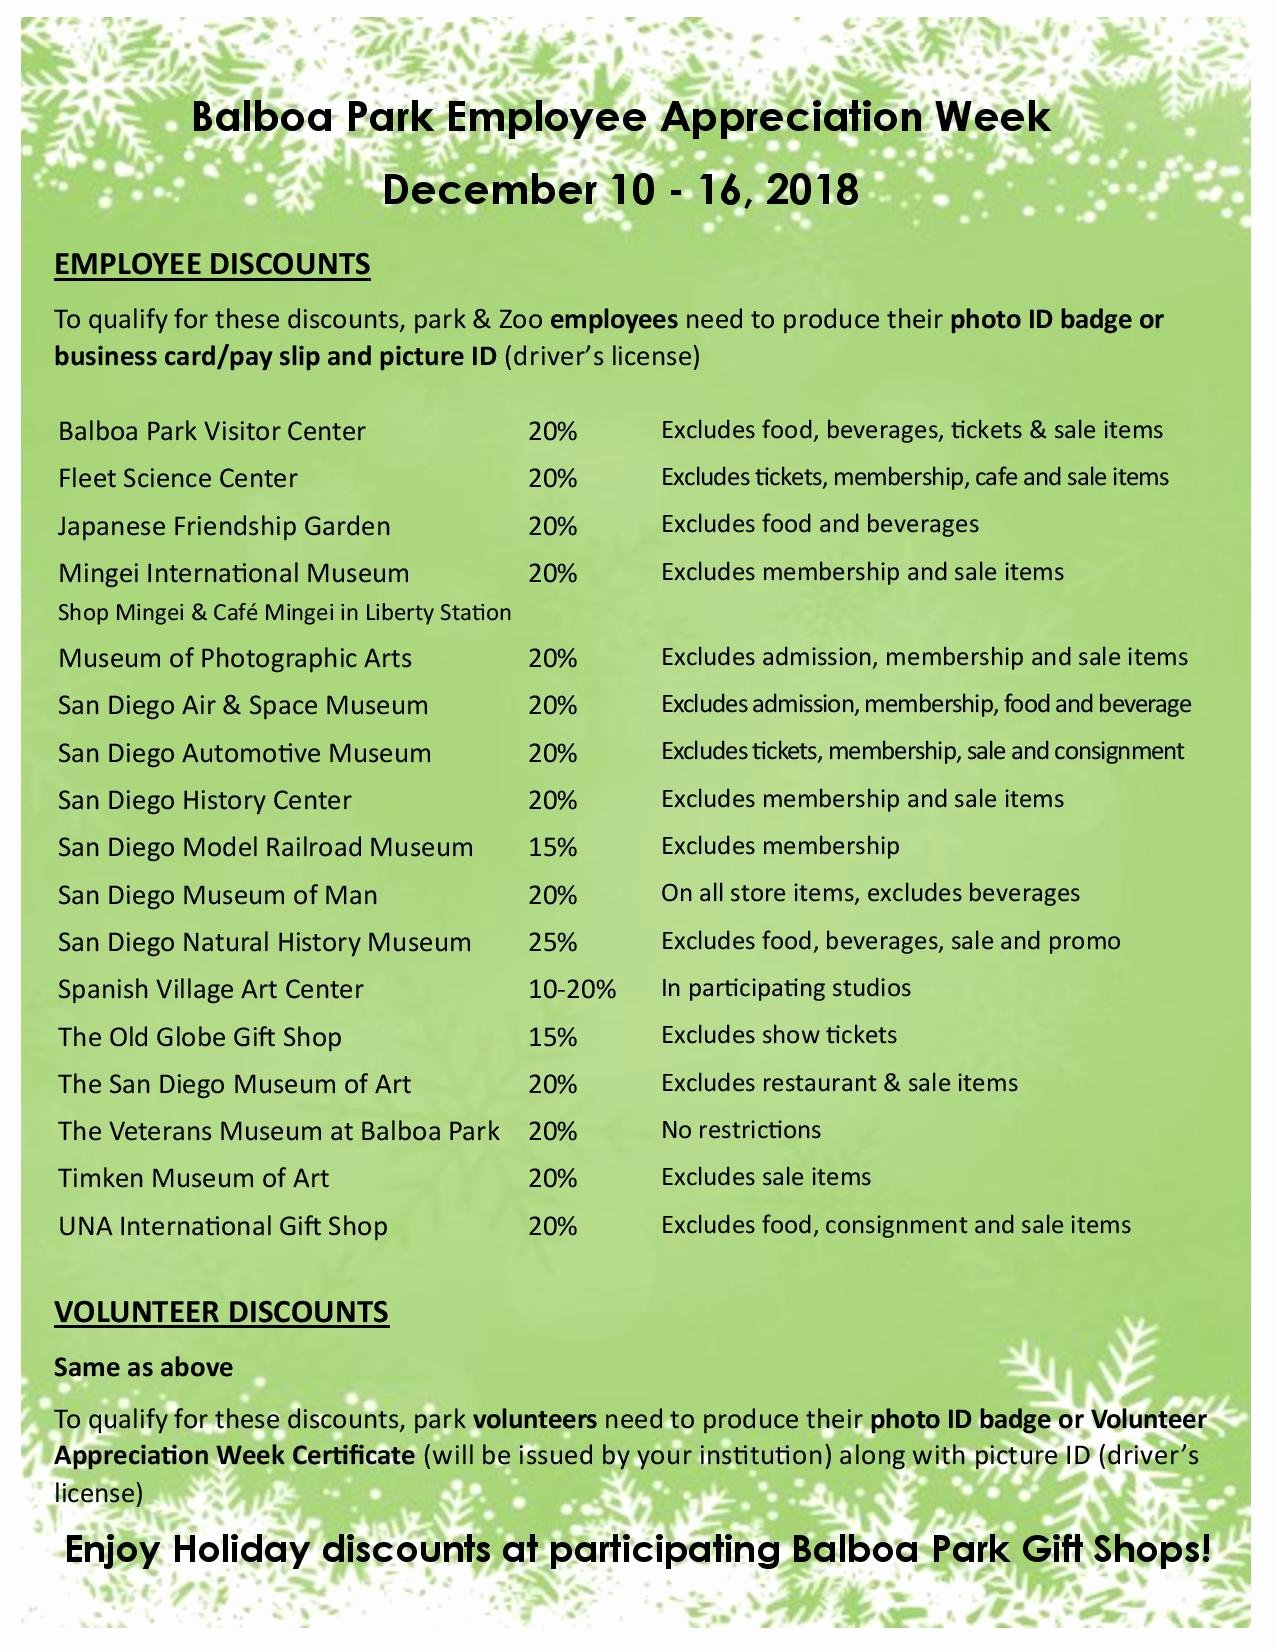 Employee Appreciation Flyer Templates Awesome Bp Employee Appreciation Week Dec 10 16 2018 Flyer Page